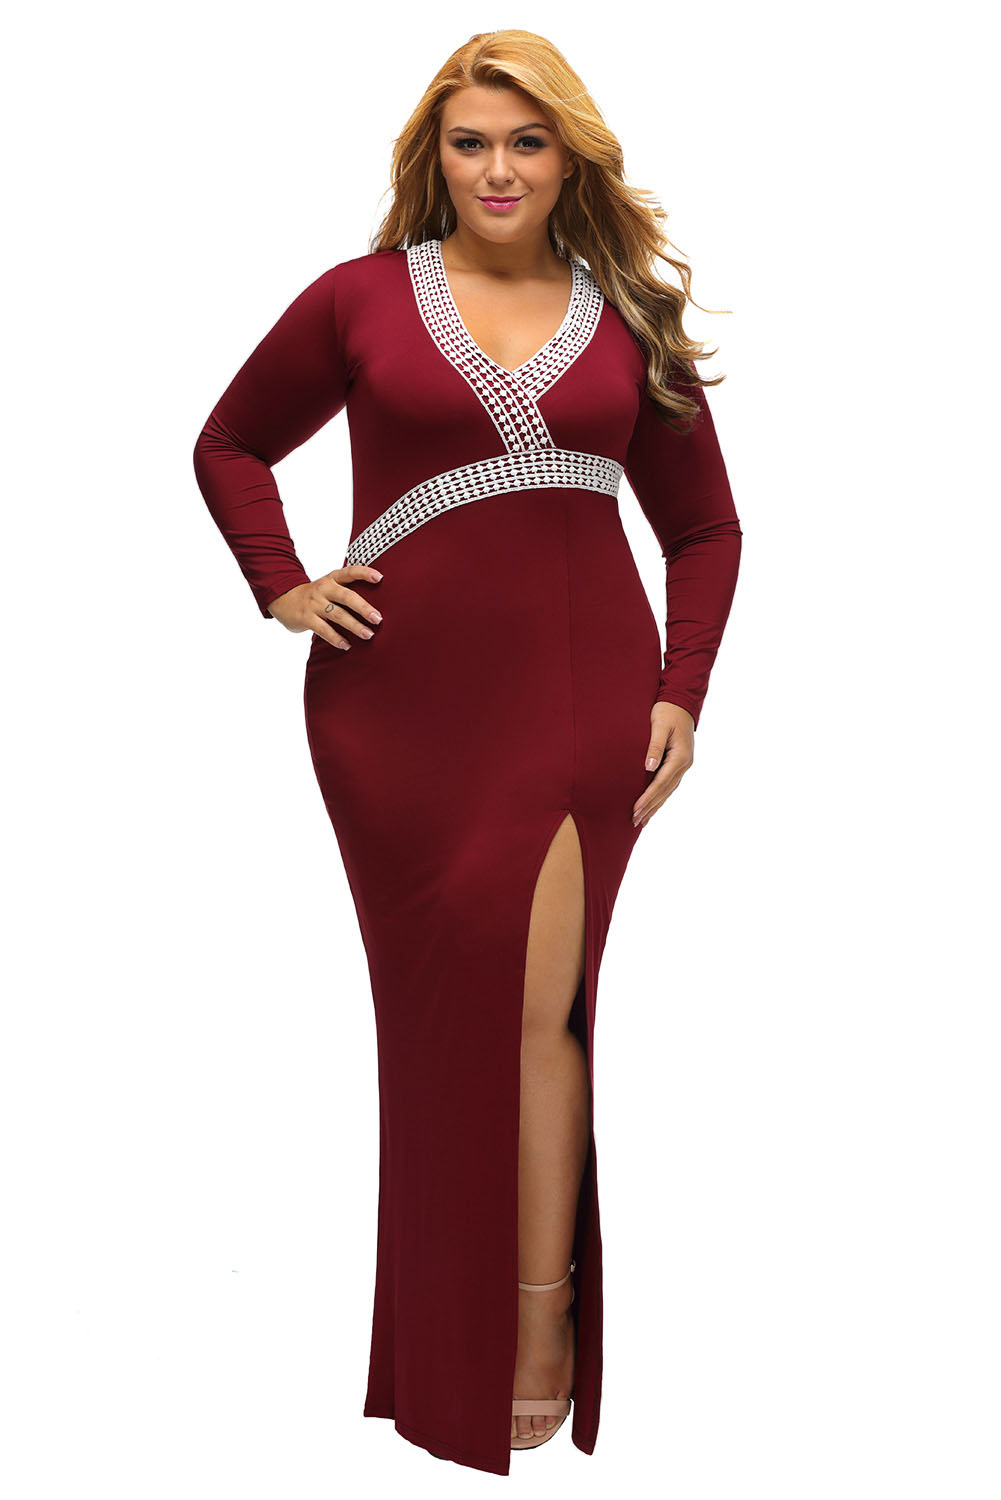 763b0f84a03a inasari woman online store – Plus Size V Neck High Slit Long Dress  S2PSD015-3